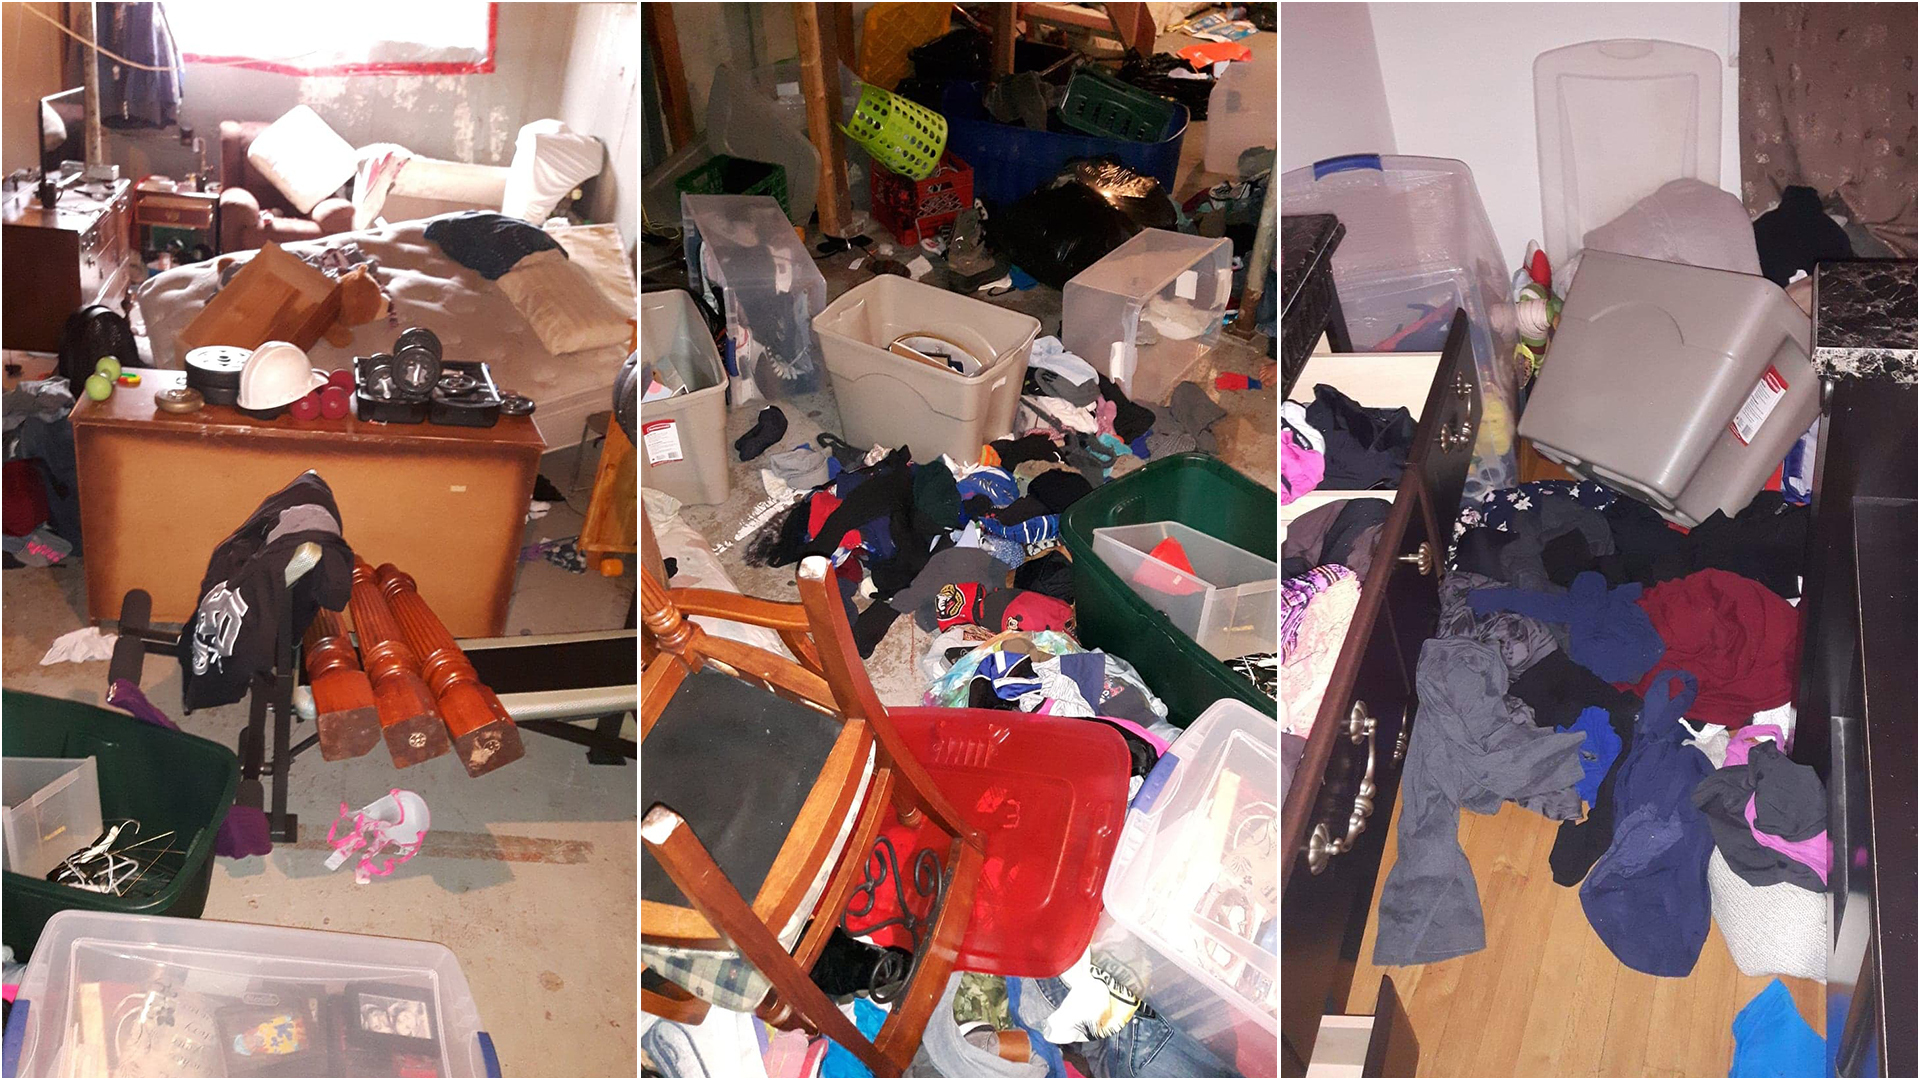 Peter Schneider says it took two days to clean up after police scoured his home looking for guns and explosives. (Submitted by Schneider family)